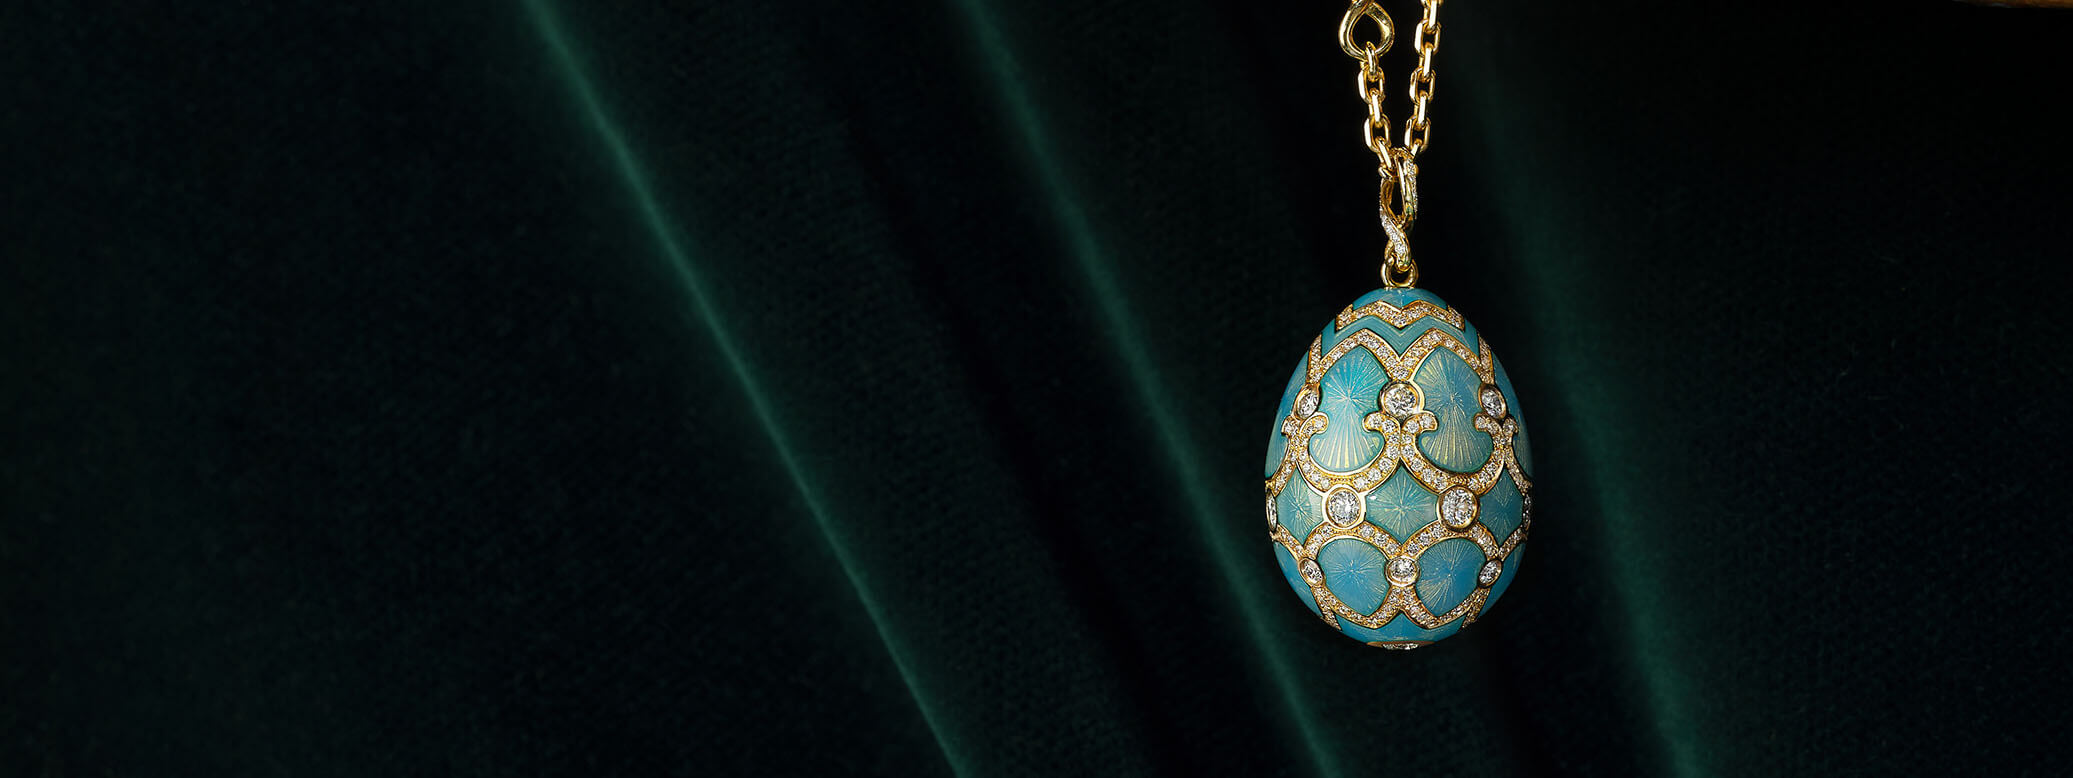 Close up view of Fabergé egg pendant with white diamonds and green emeralds